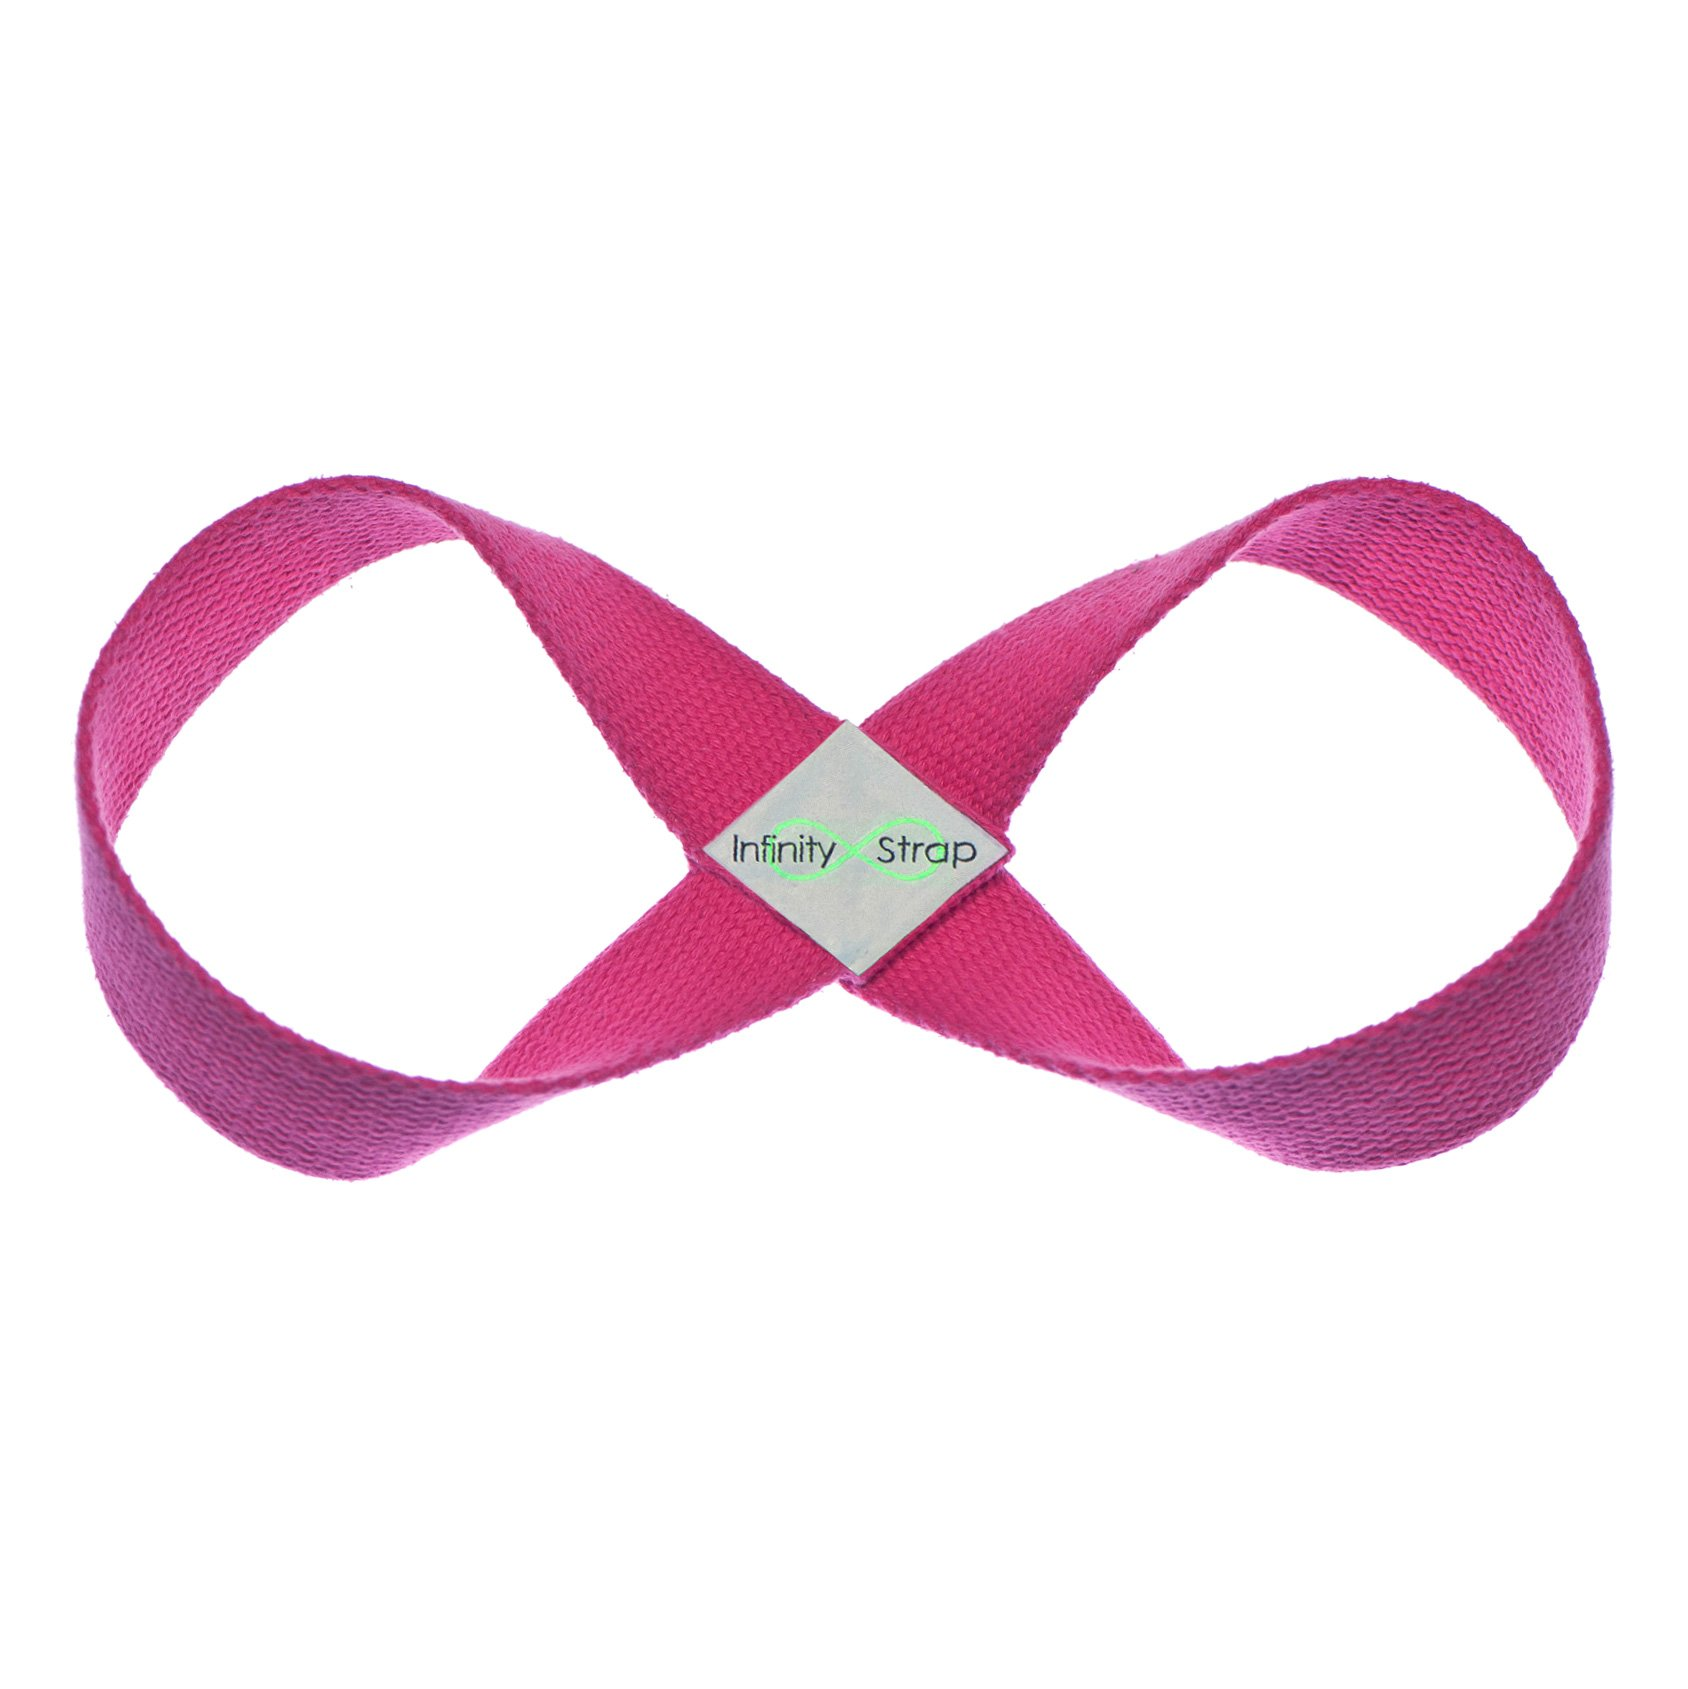 Infinity Strap - Cotton - Guava (Pink) - Small 13'' Size